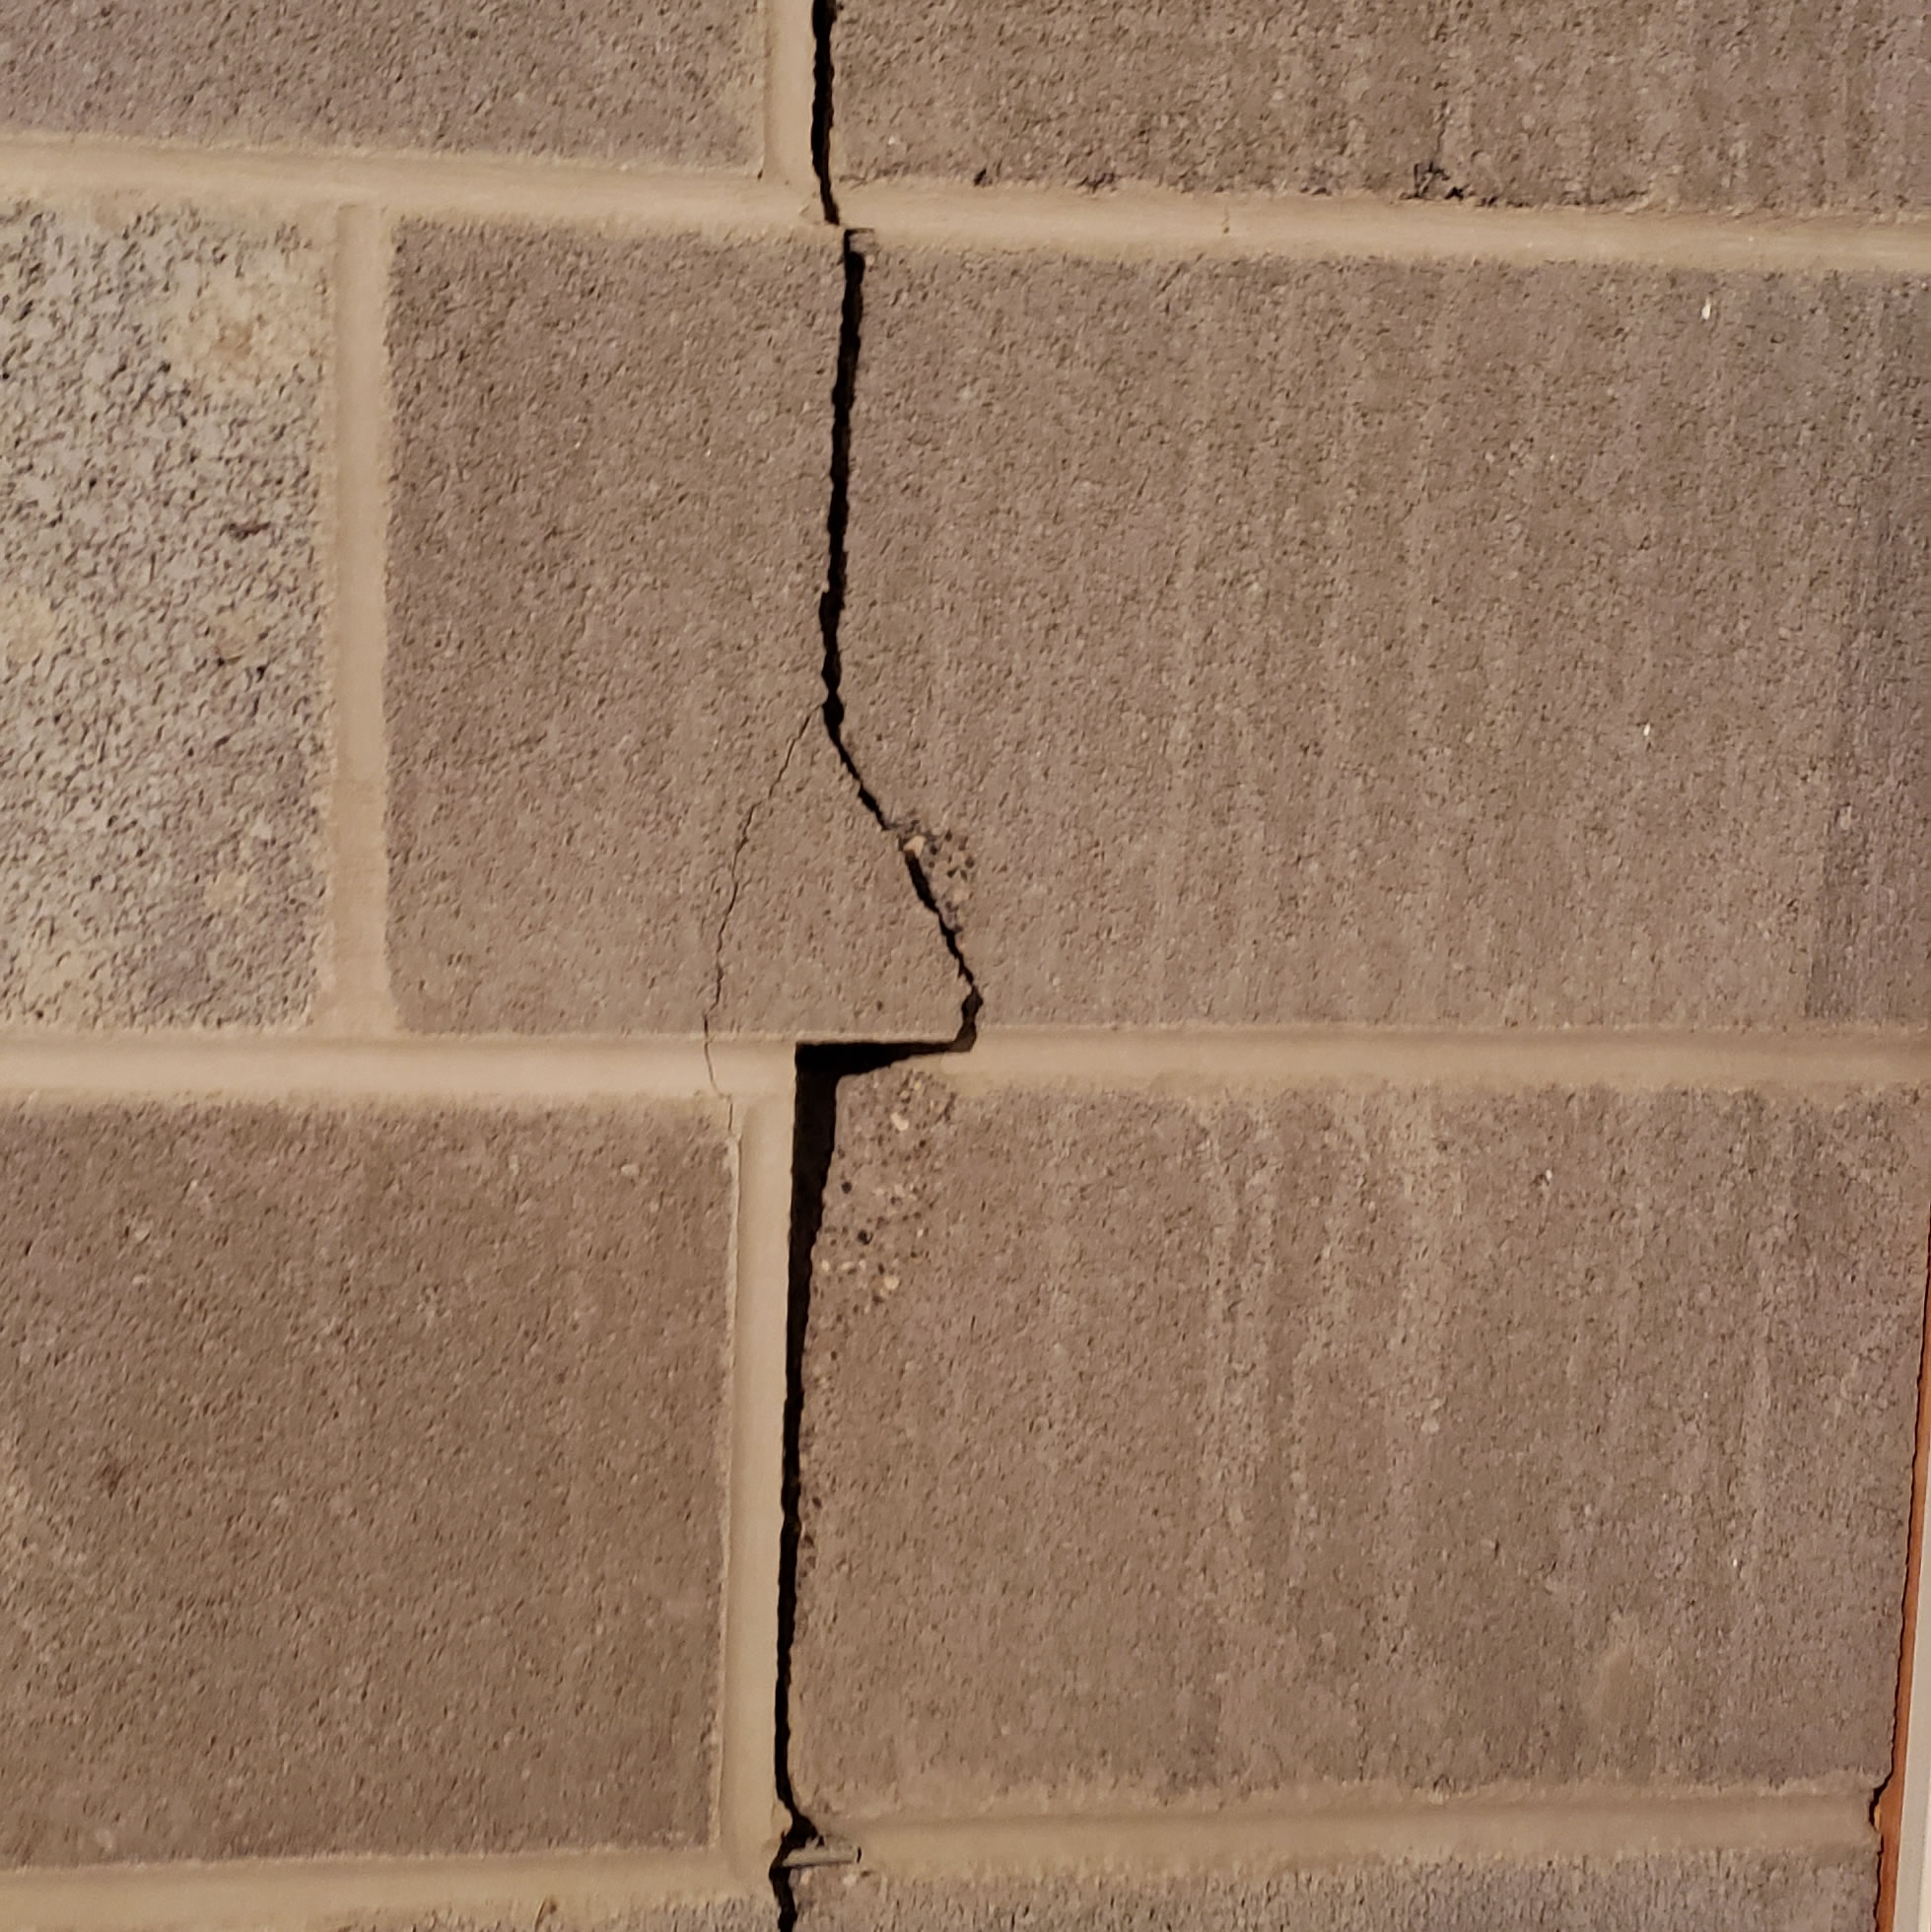 Vertical Crack in Cement Block Wall